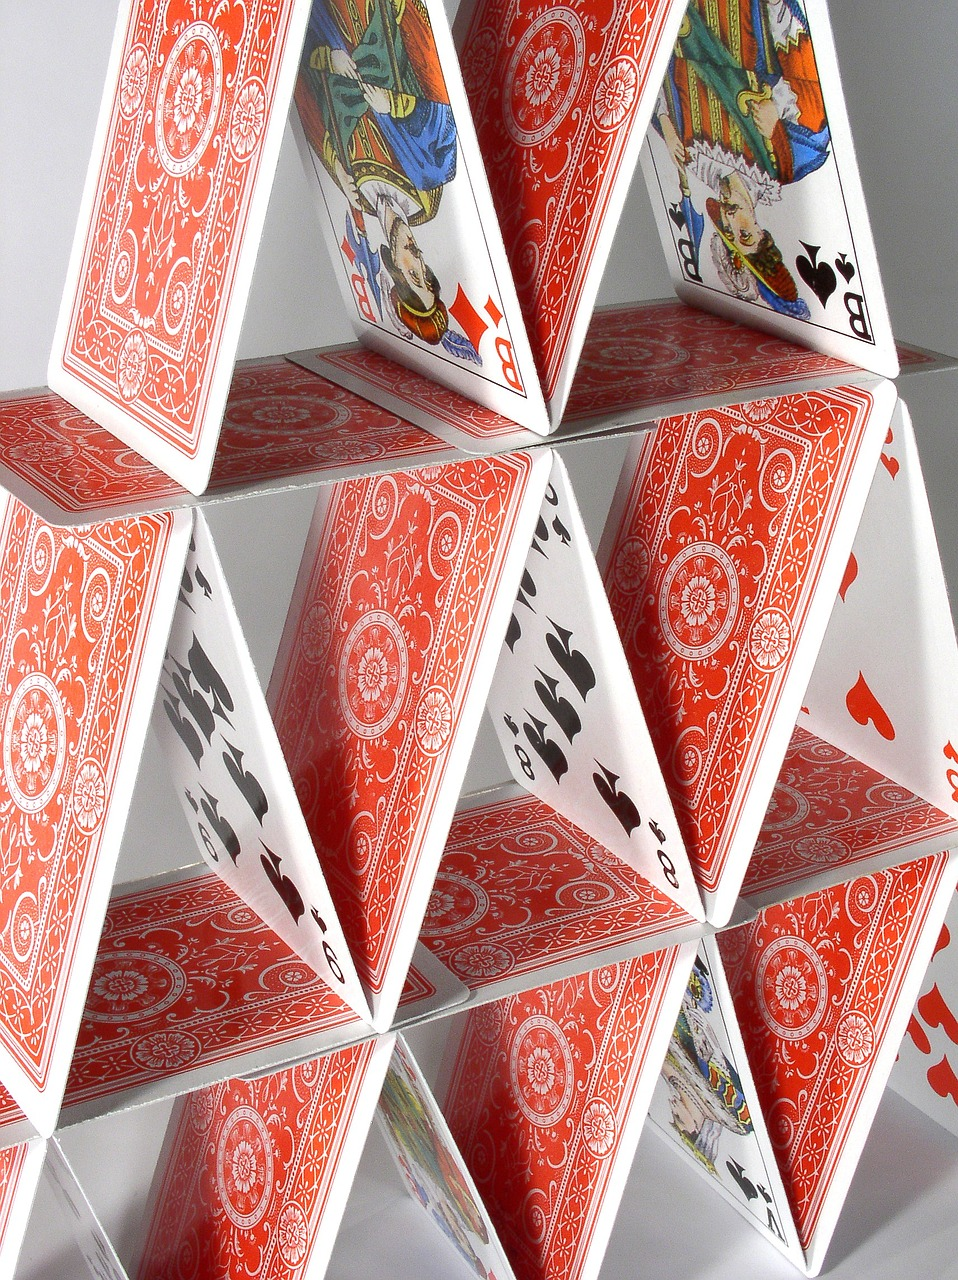 house-of-cards-719701_1280